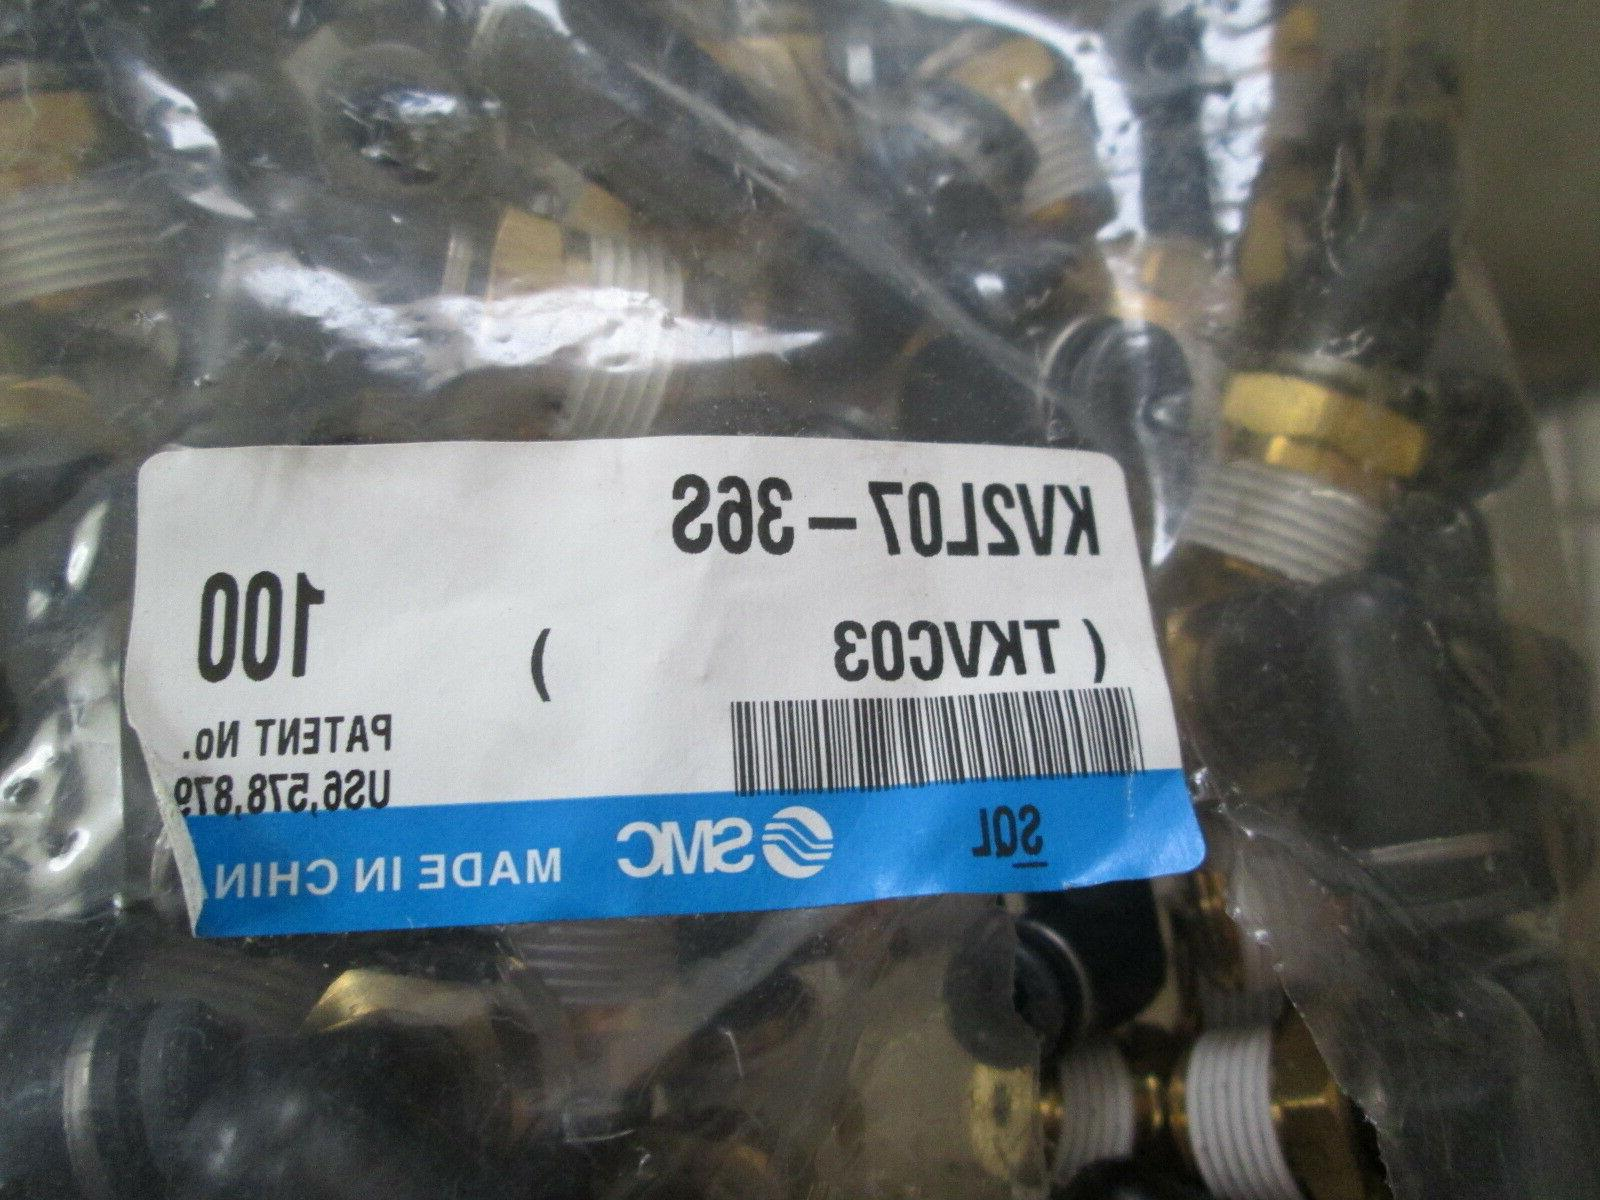 Lot of 5 SMC 1/4 NPT 90 ELBOW Fitting Connector